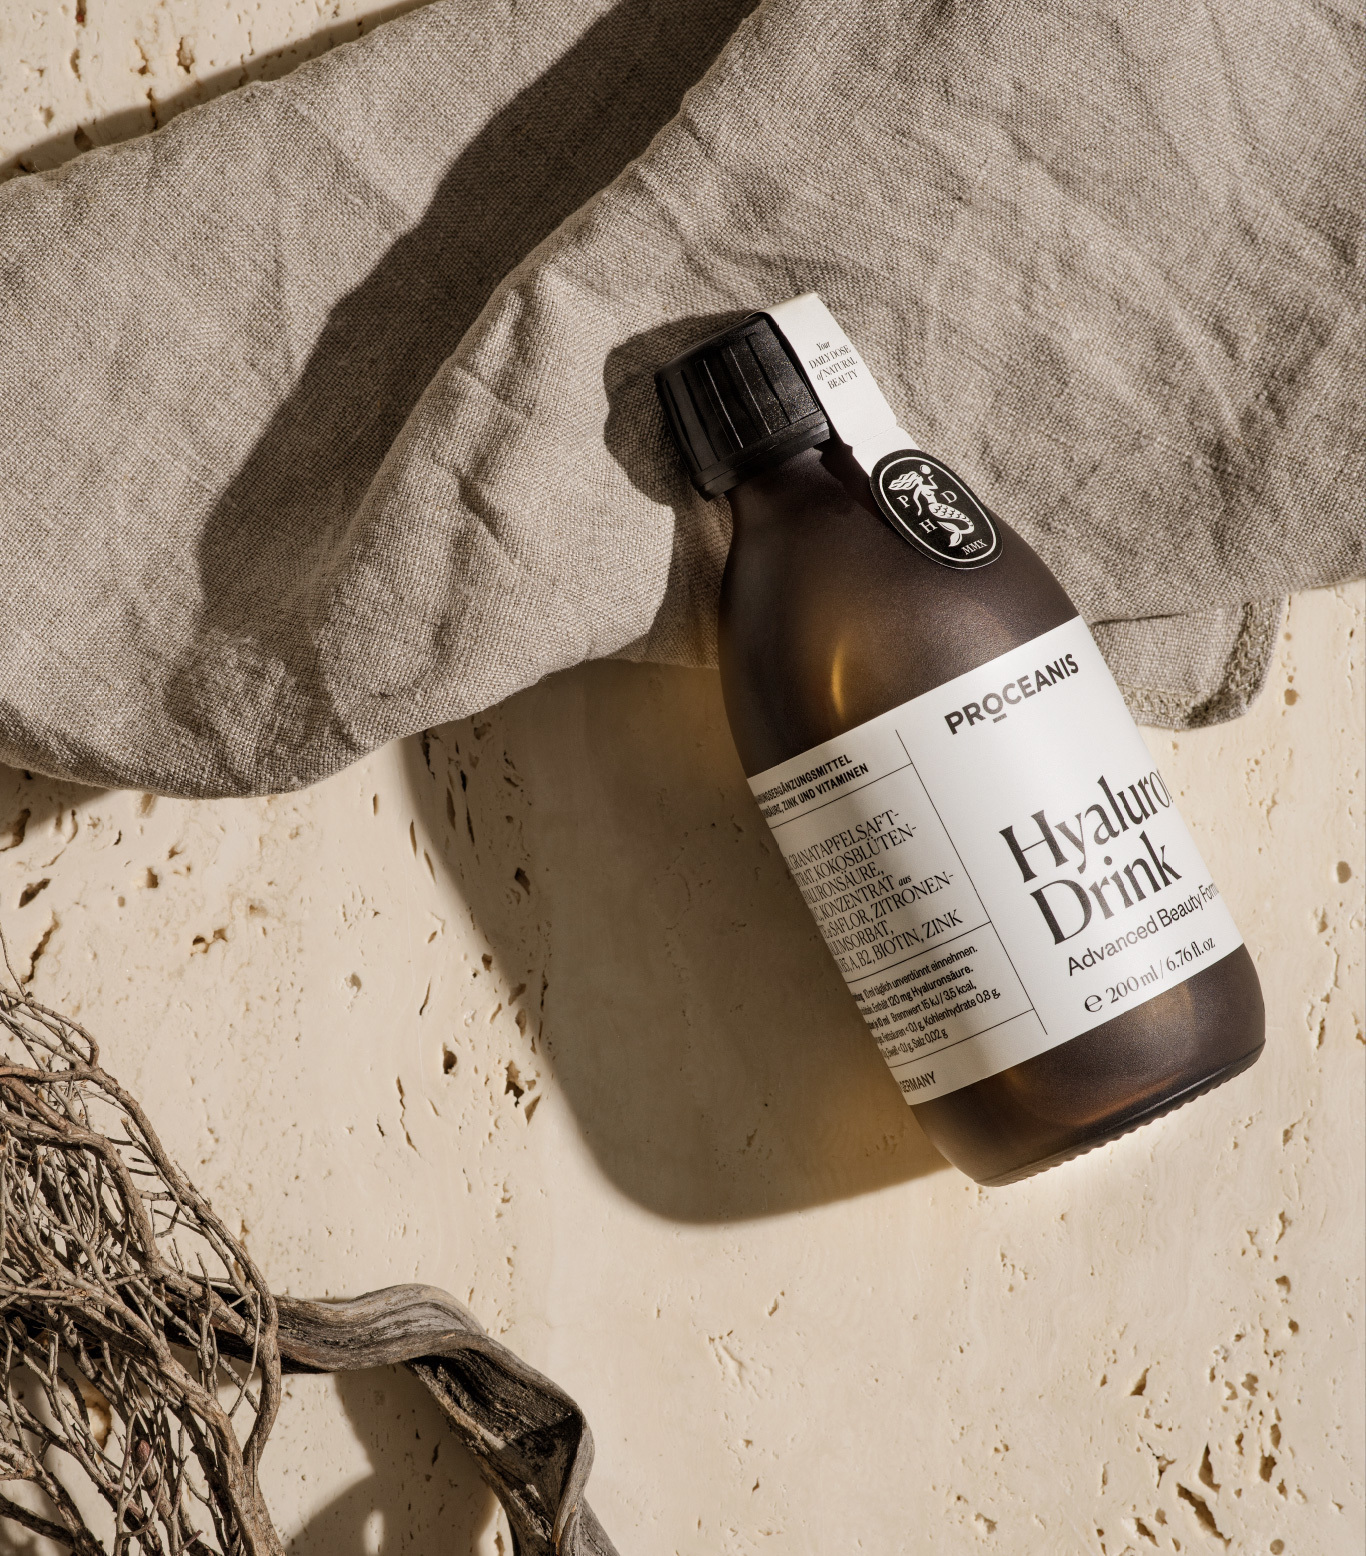 hyaluron drink flasche_tuch_holz_proceanis.com